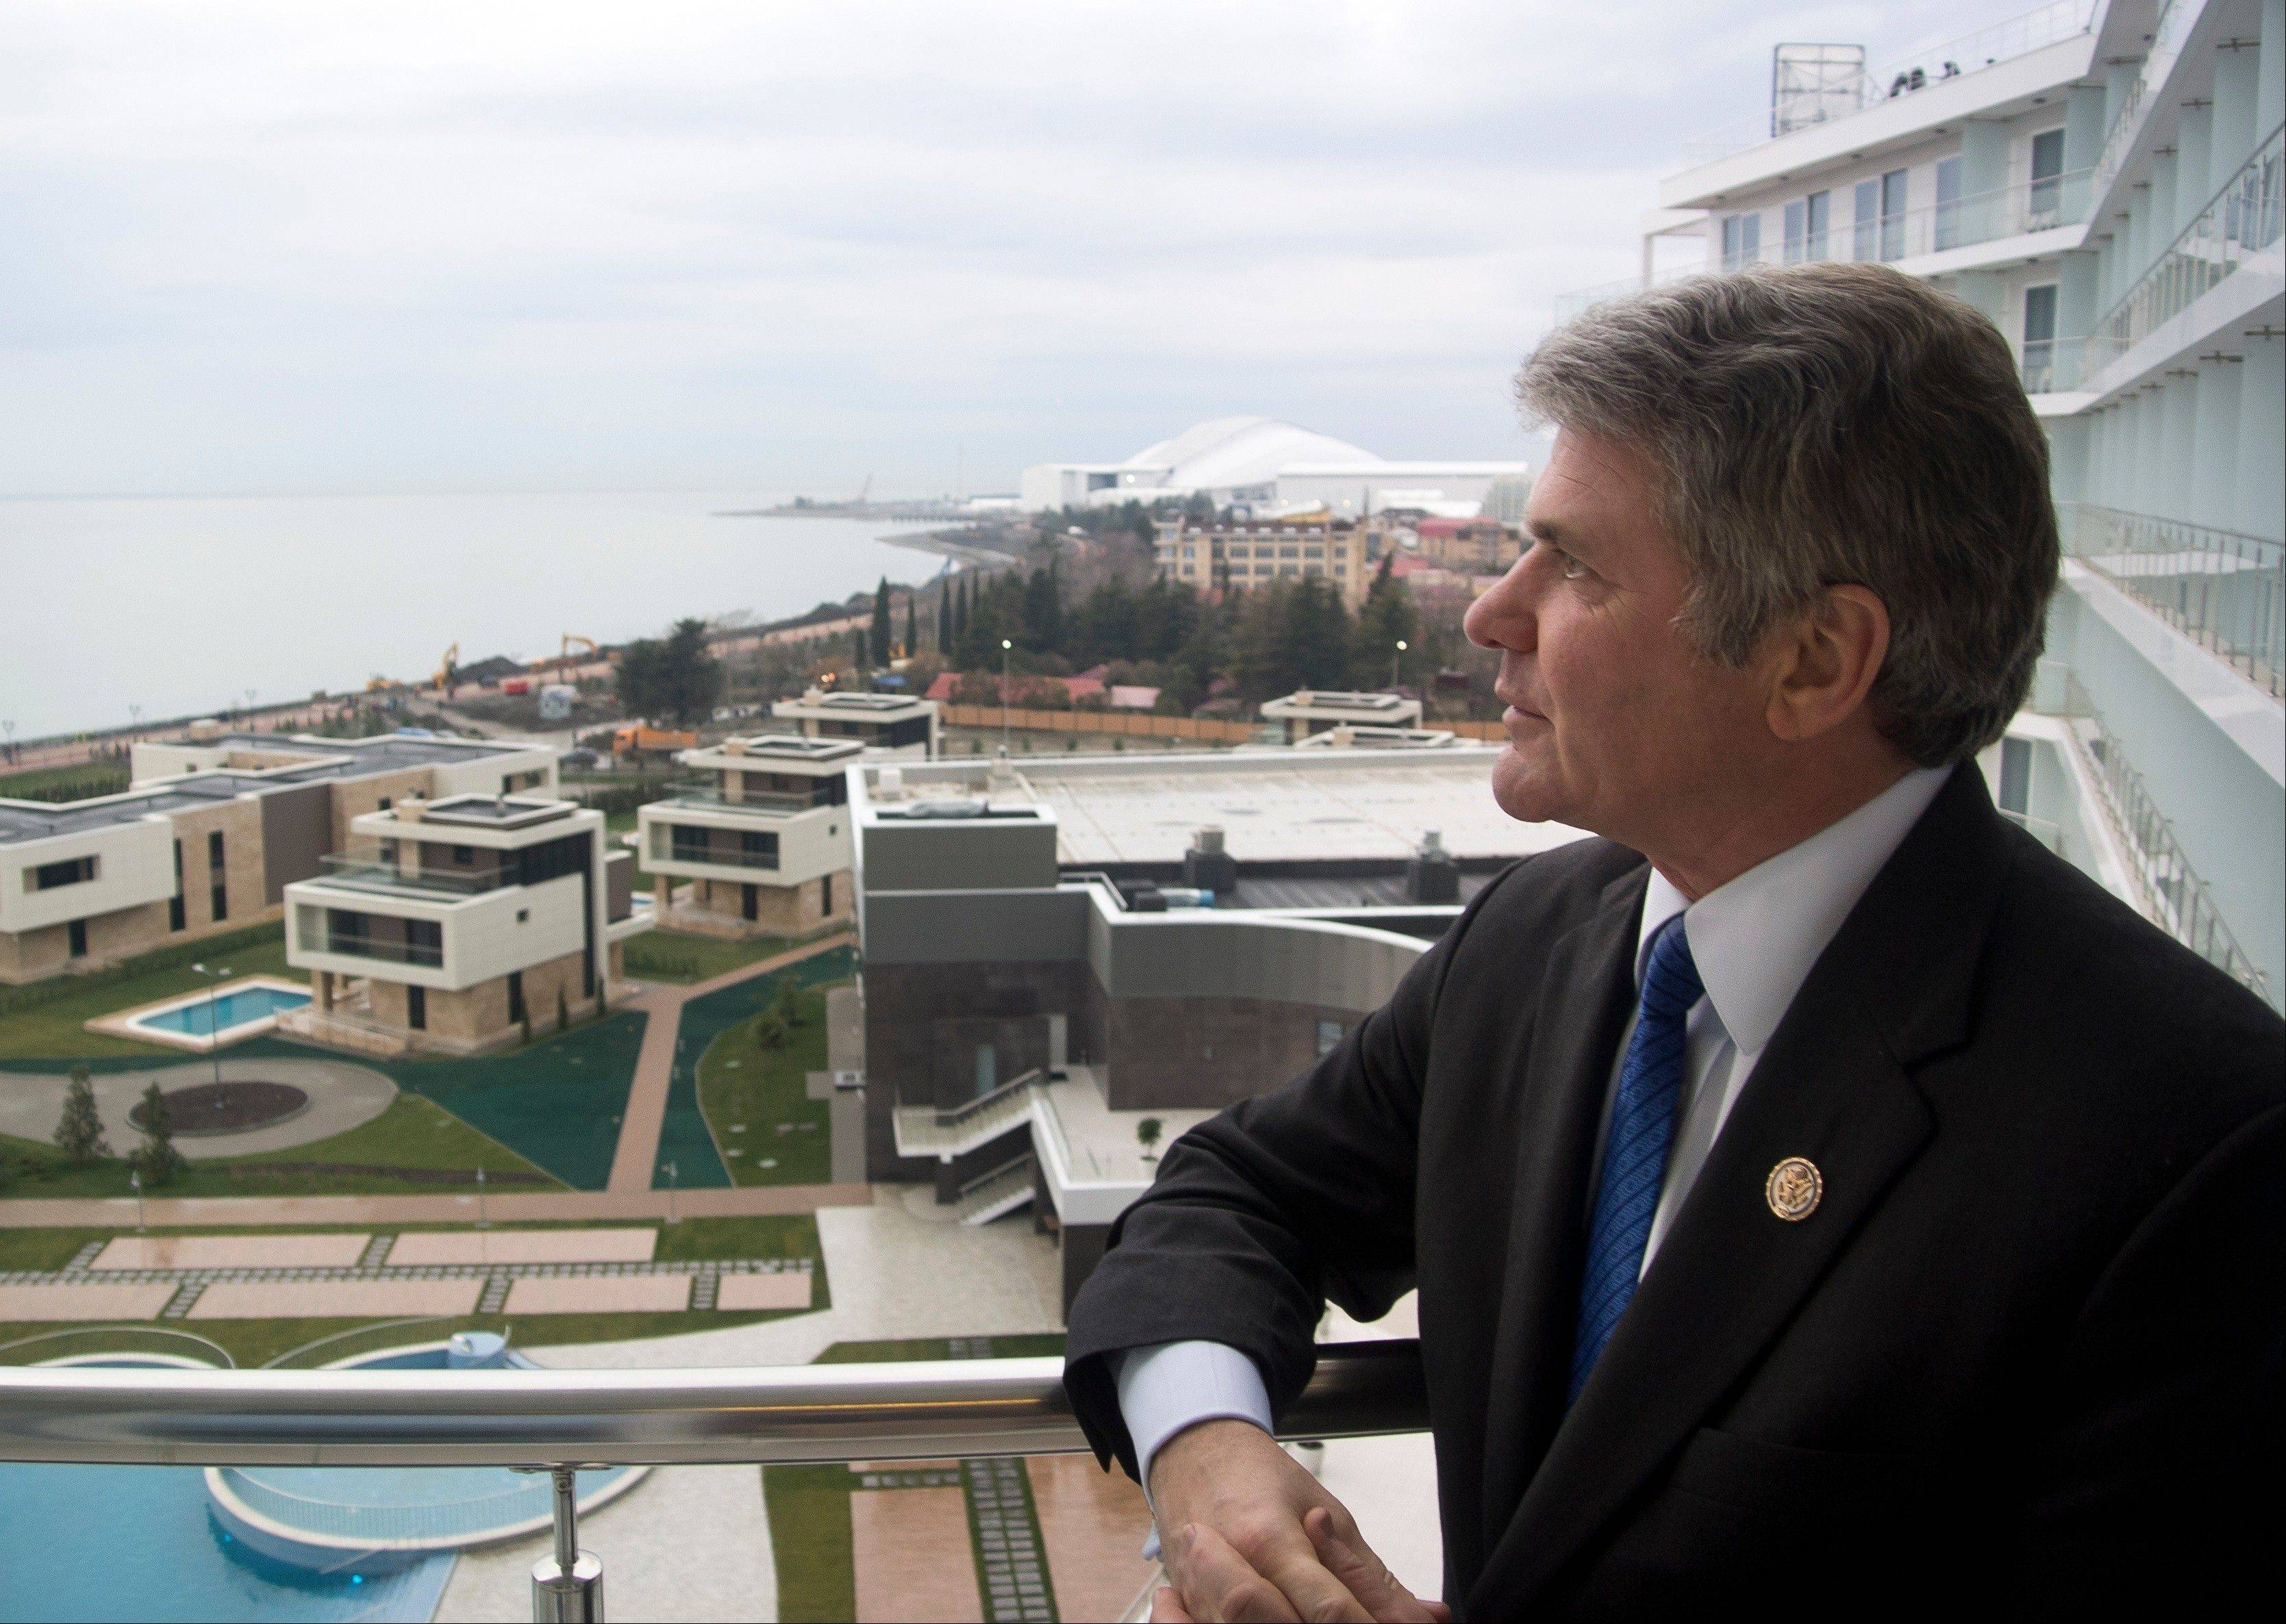 U.S. Congressman, Rep. Michael McCaul, chairman of the House Homeland Security Committee, stands of a balcony of his hotel which overlooks the Olympic Park, in the Black Sea resort of Sochi, Tuesday, McCaul, in Sochi to assess the situation, said he was impressed by the work of Russian security forces but troubled that potential suicide bombers had gotten into the city despite all of the extraordinary security measures.